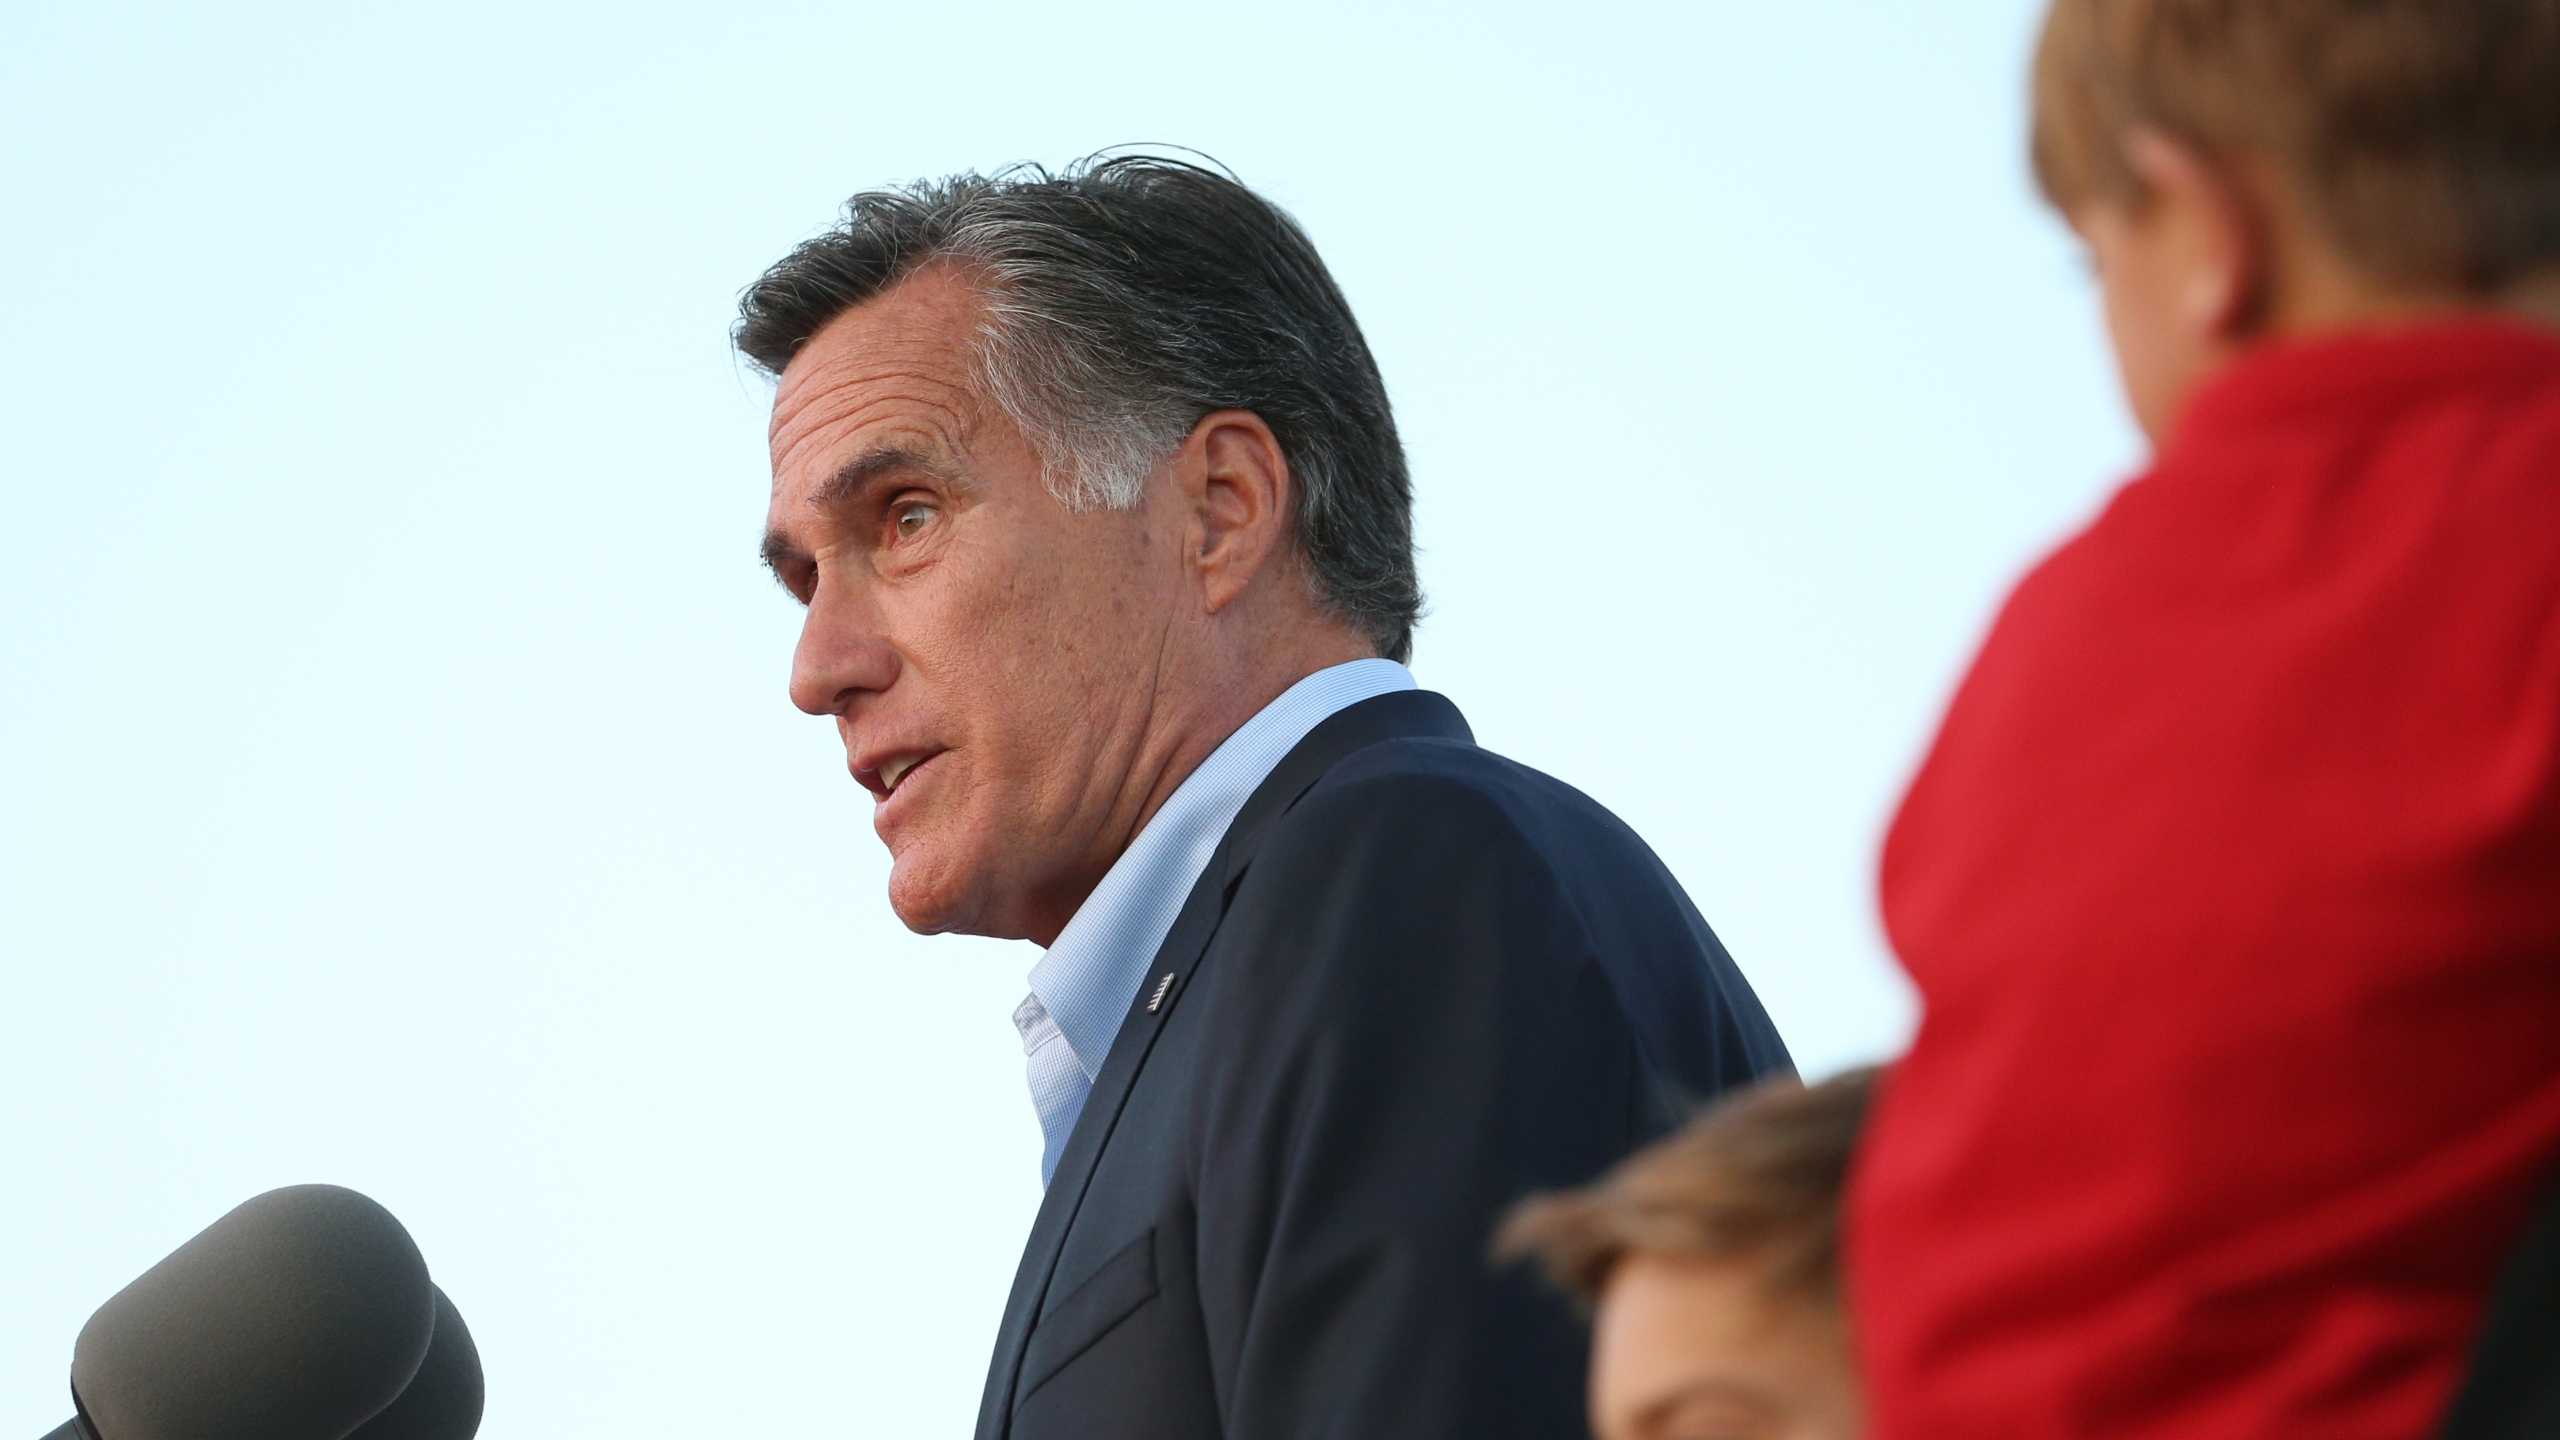 Mitt Romney speaks to supporters after declaring victory in his Senate primary race on June 26, 2018, in Orem, Utah. (Credit: George Frey / Getty Images)